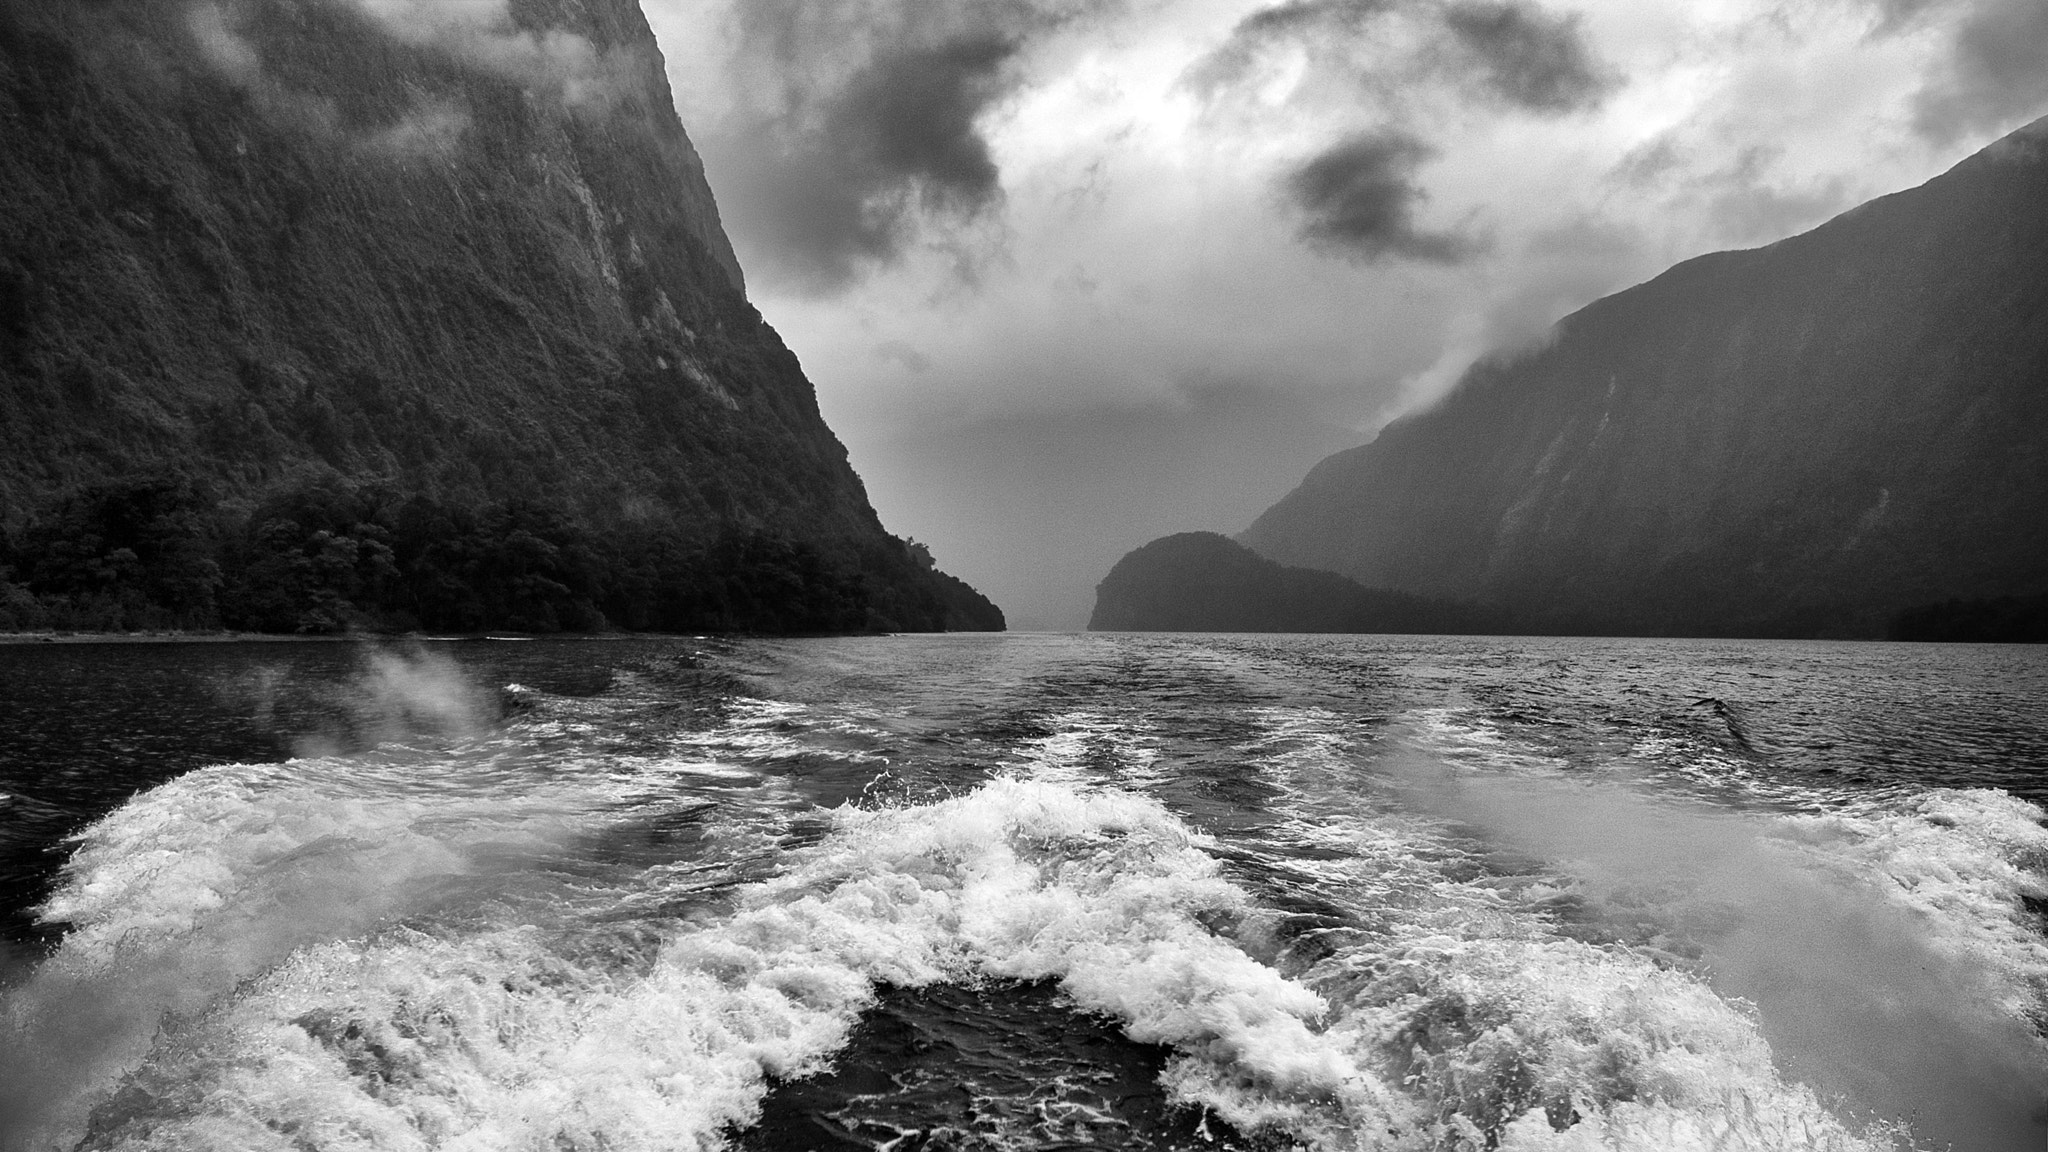 Photograph Doubtful Sound by Margaret Morgan on 500px